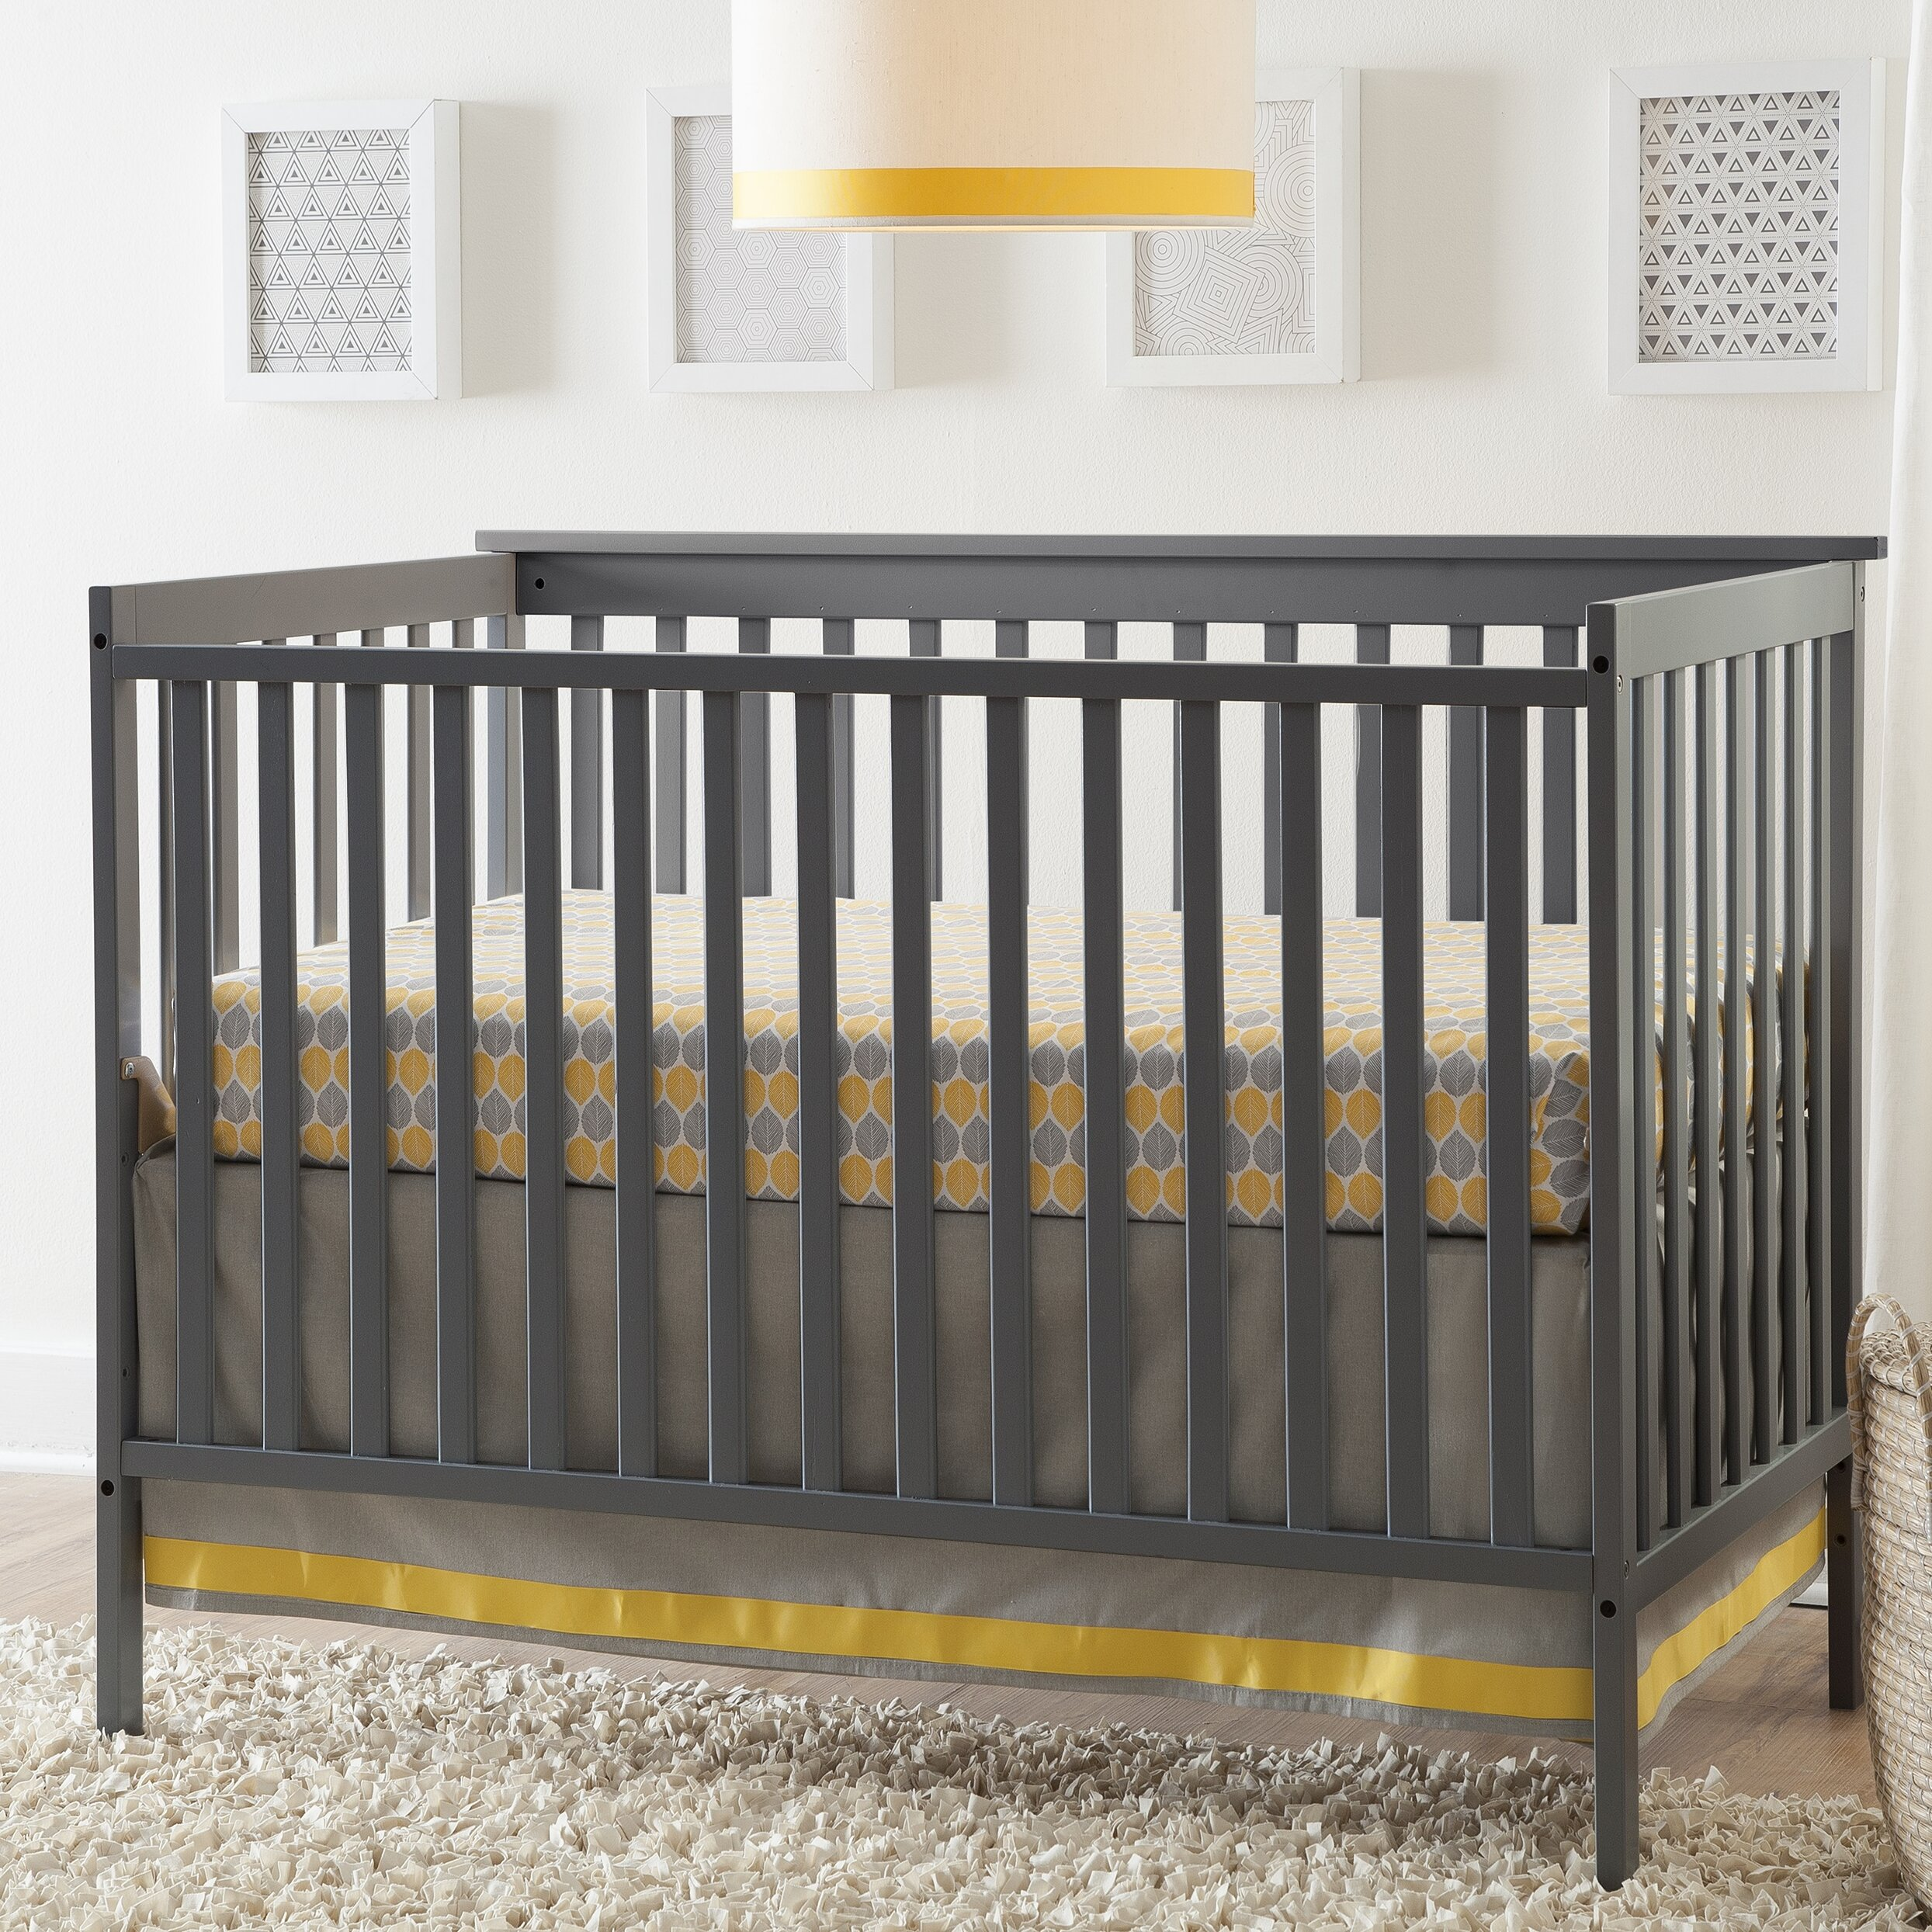 Used crib for sale ottawa - Storkcraft Sheffield 2 In 1 Convertible Crib